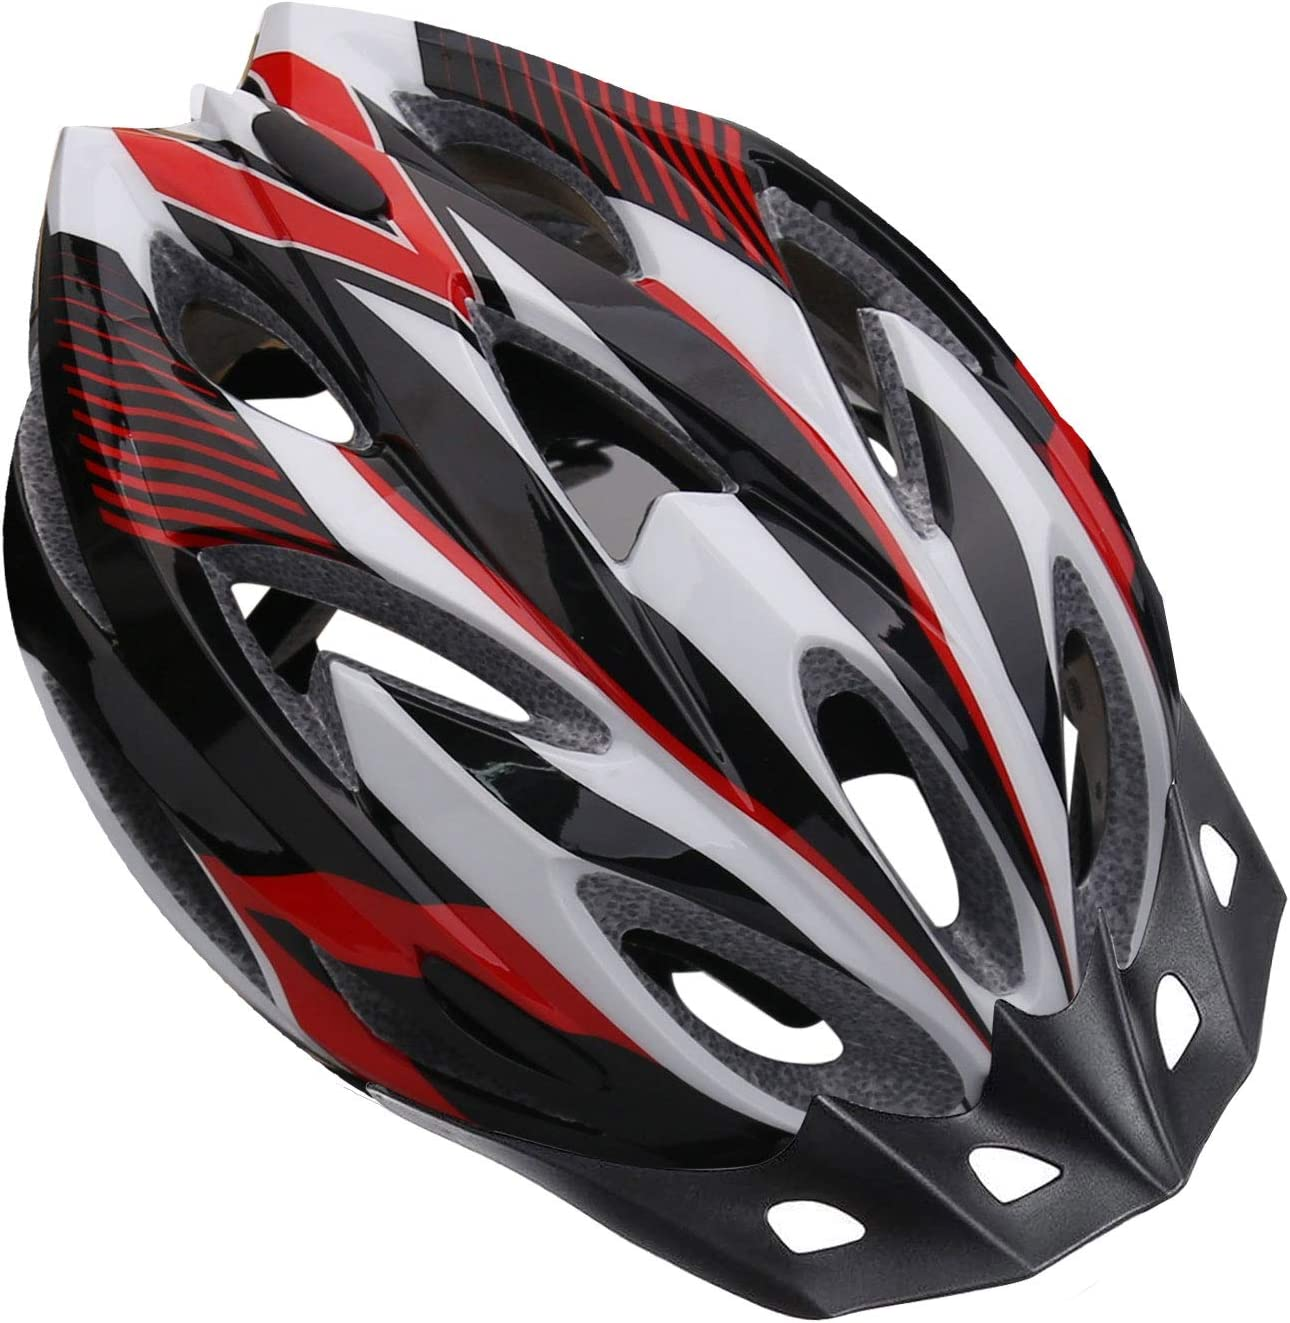 Shinmax Bike Helmet, Cpsc & Ce Safety Certified Bicycle Helmet for Men/Women with Detachable Sun Visor Lightweight Cycling Helmet Adjustable Size for Adult Mountain Road